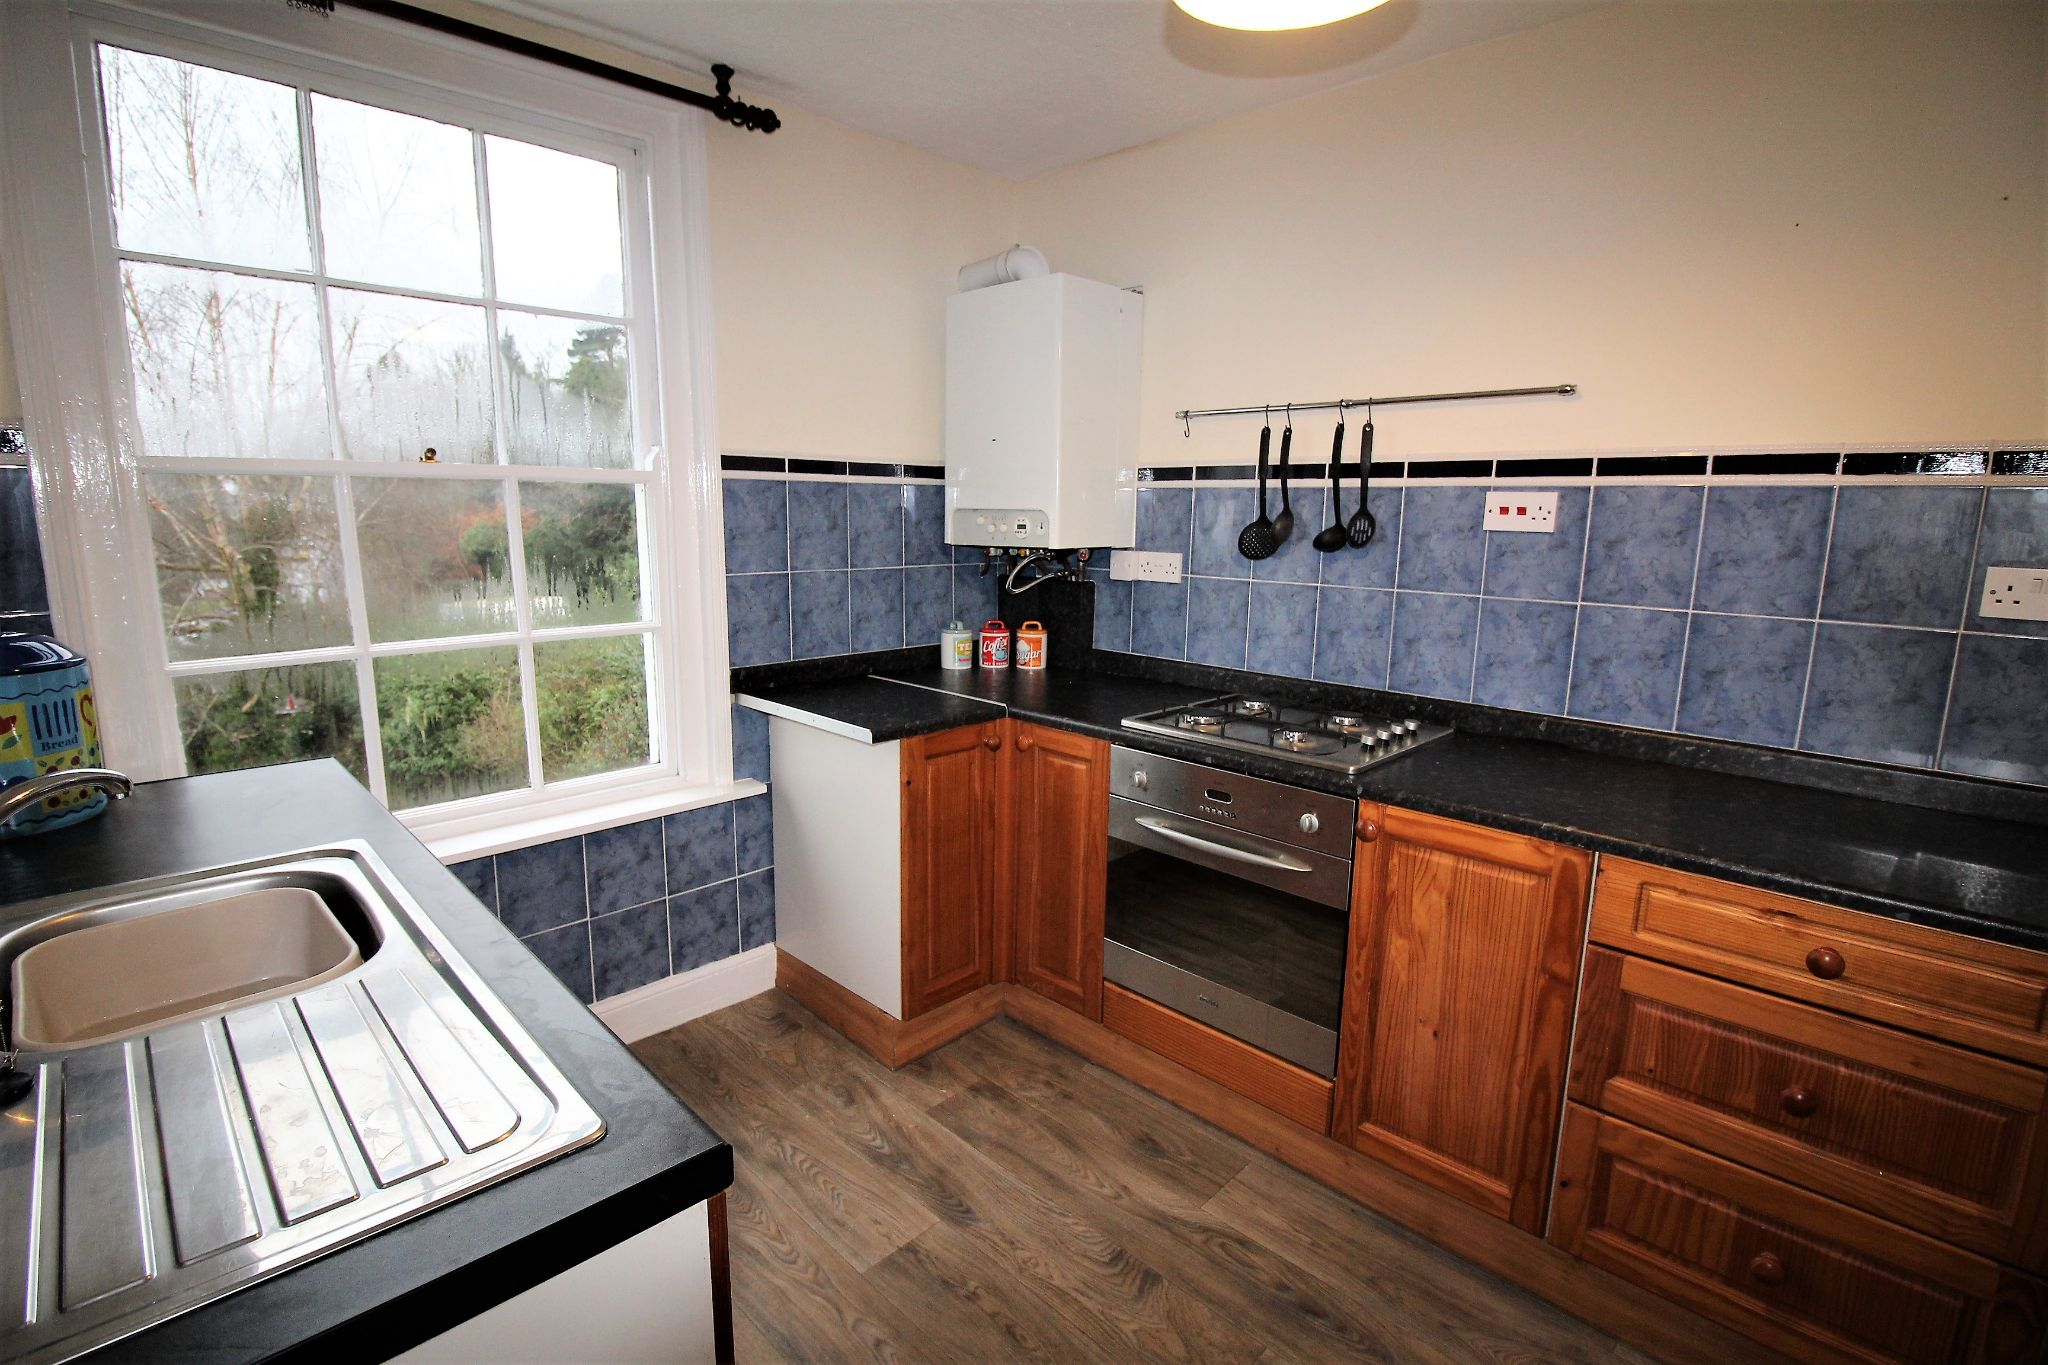 1 bedroom apartment flat/apartment For Sale in Malvern Hills - Photograph 5.